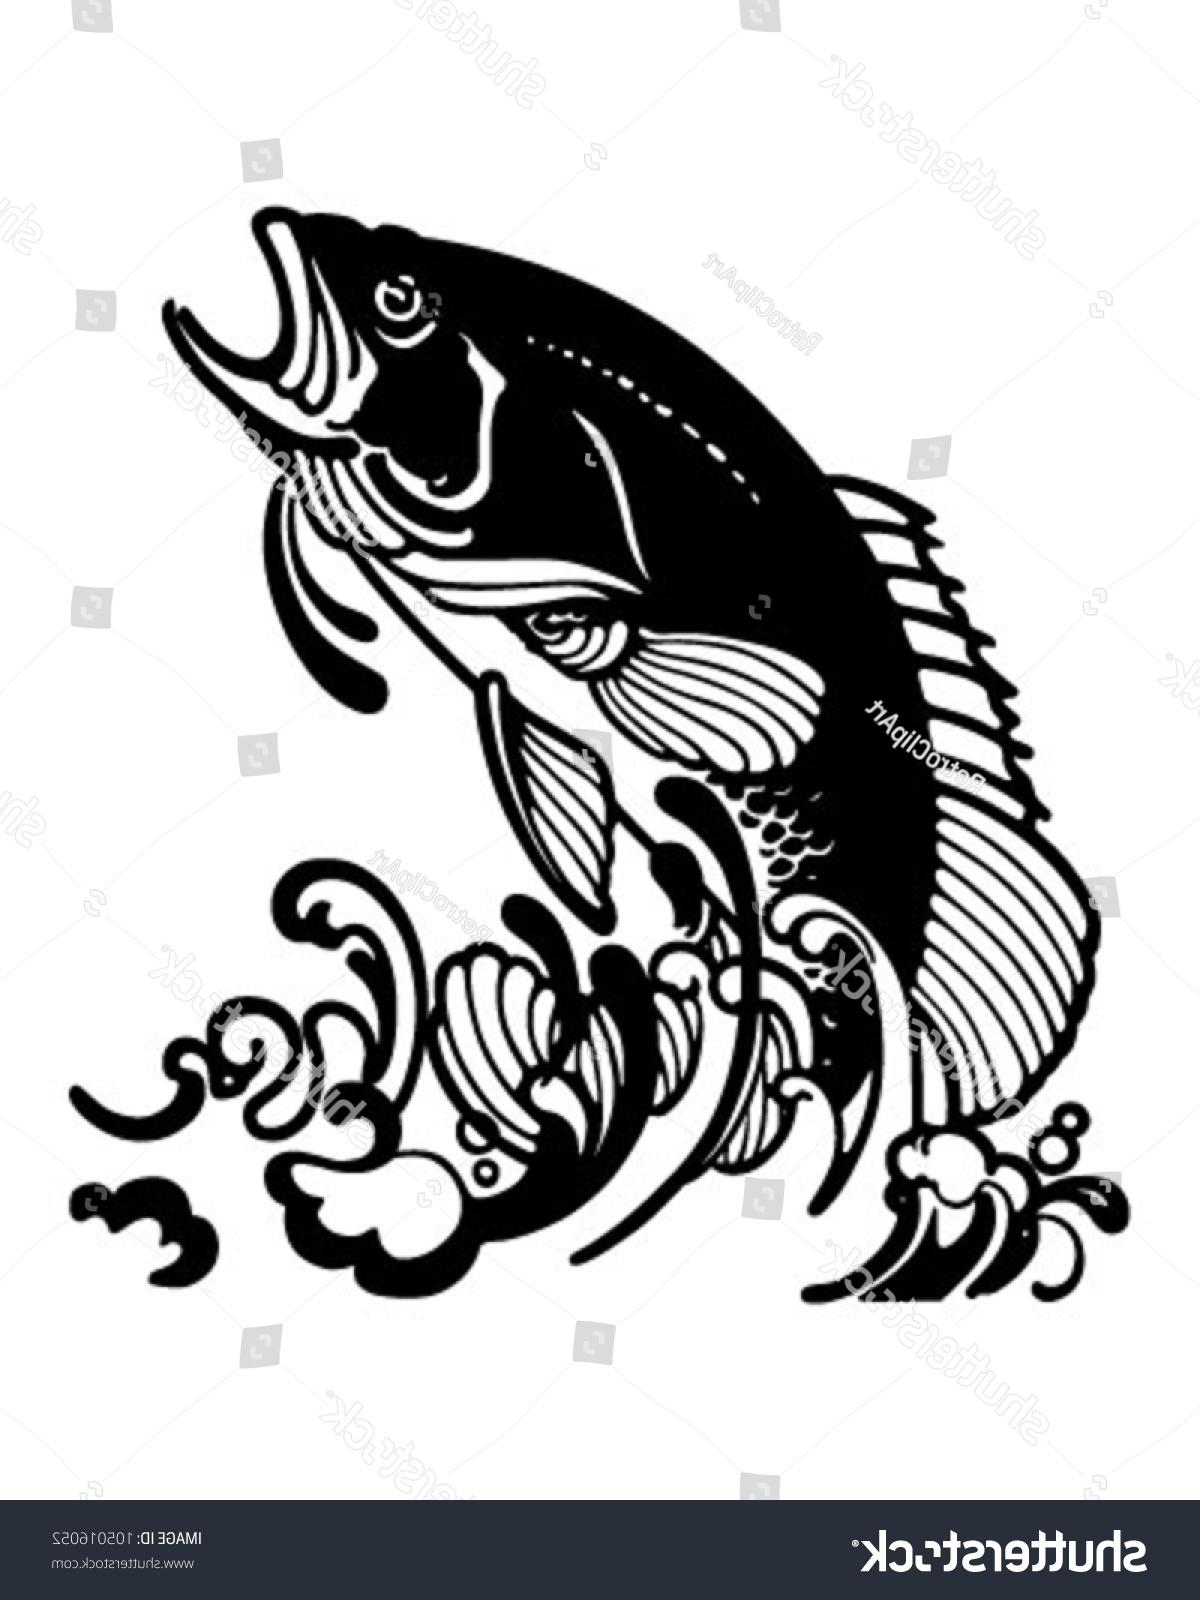 1200x1600 Best Hd Stock Vector Stylized Jumping Fish Retro Clipart